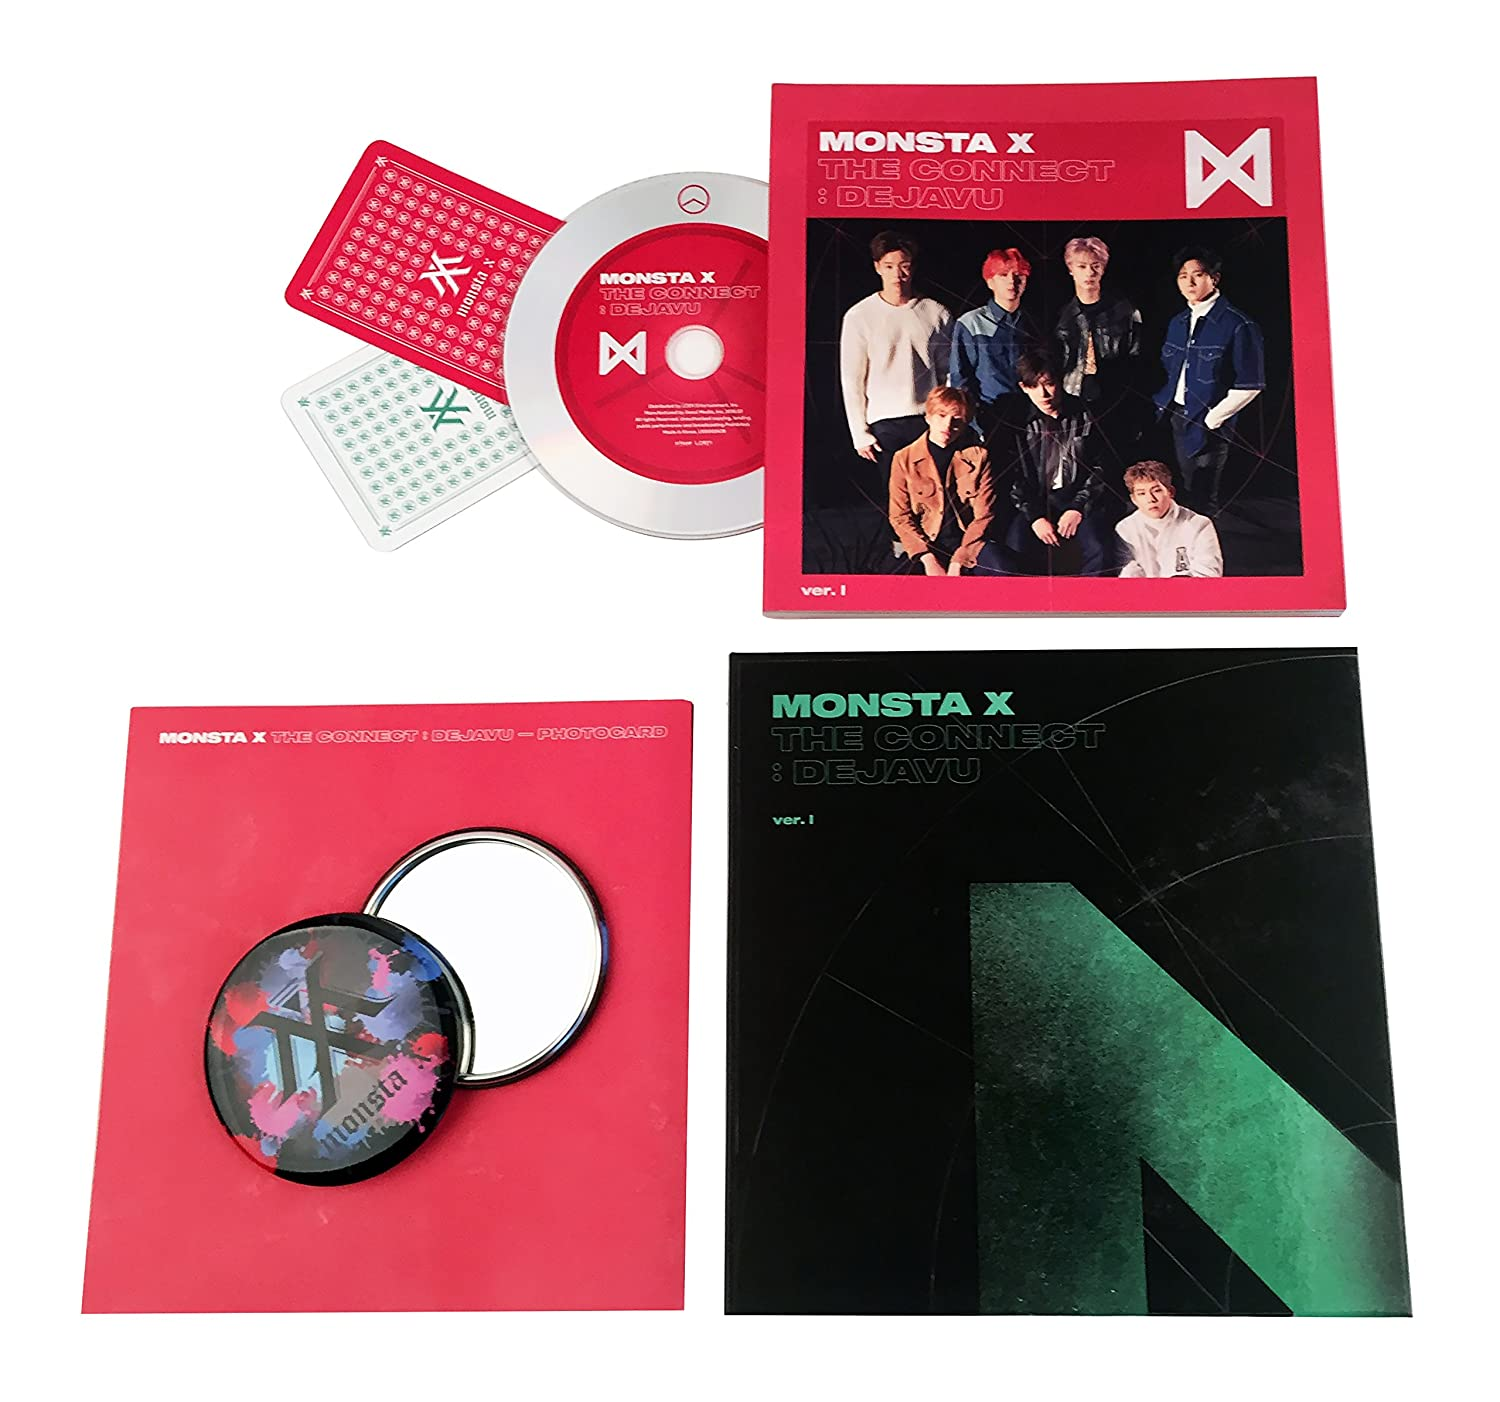 The connect: dejavu [ ver. Iv ] monsta x album cd + booklet + 2.